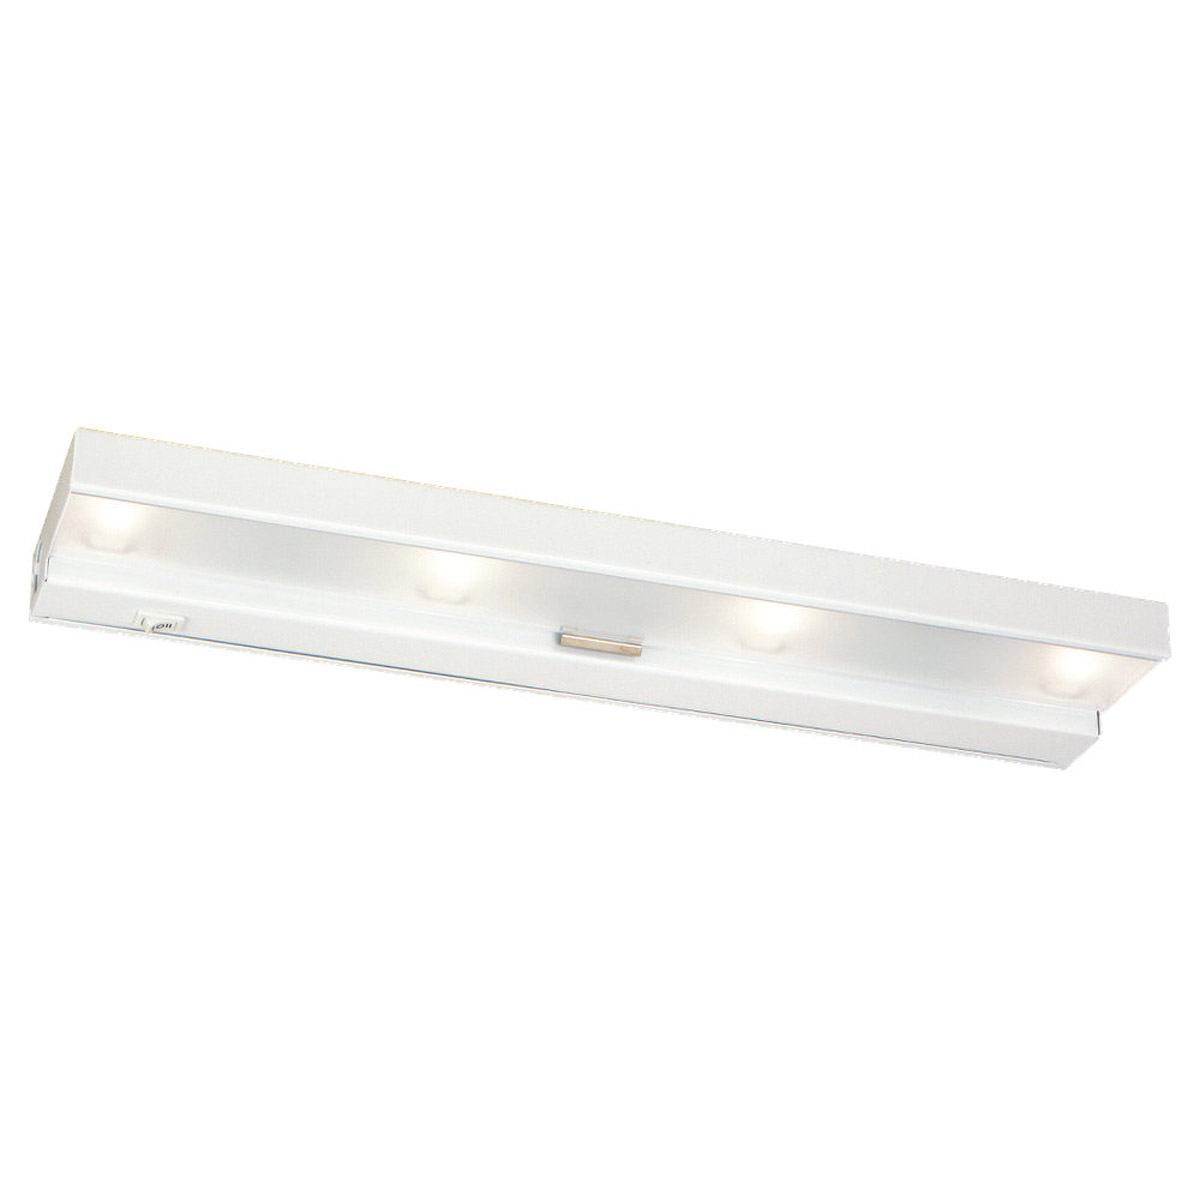 Sea Gull Lighting Undercabinet Lighting 4 Light Undercabinet Xenon in White 98020-15 photo